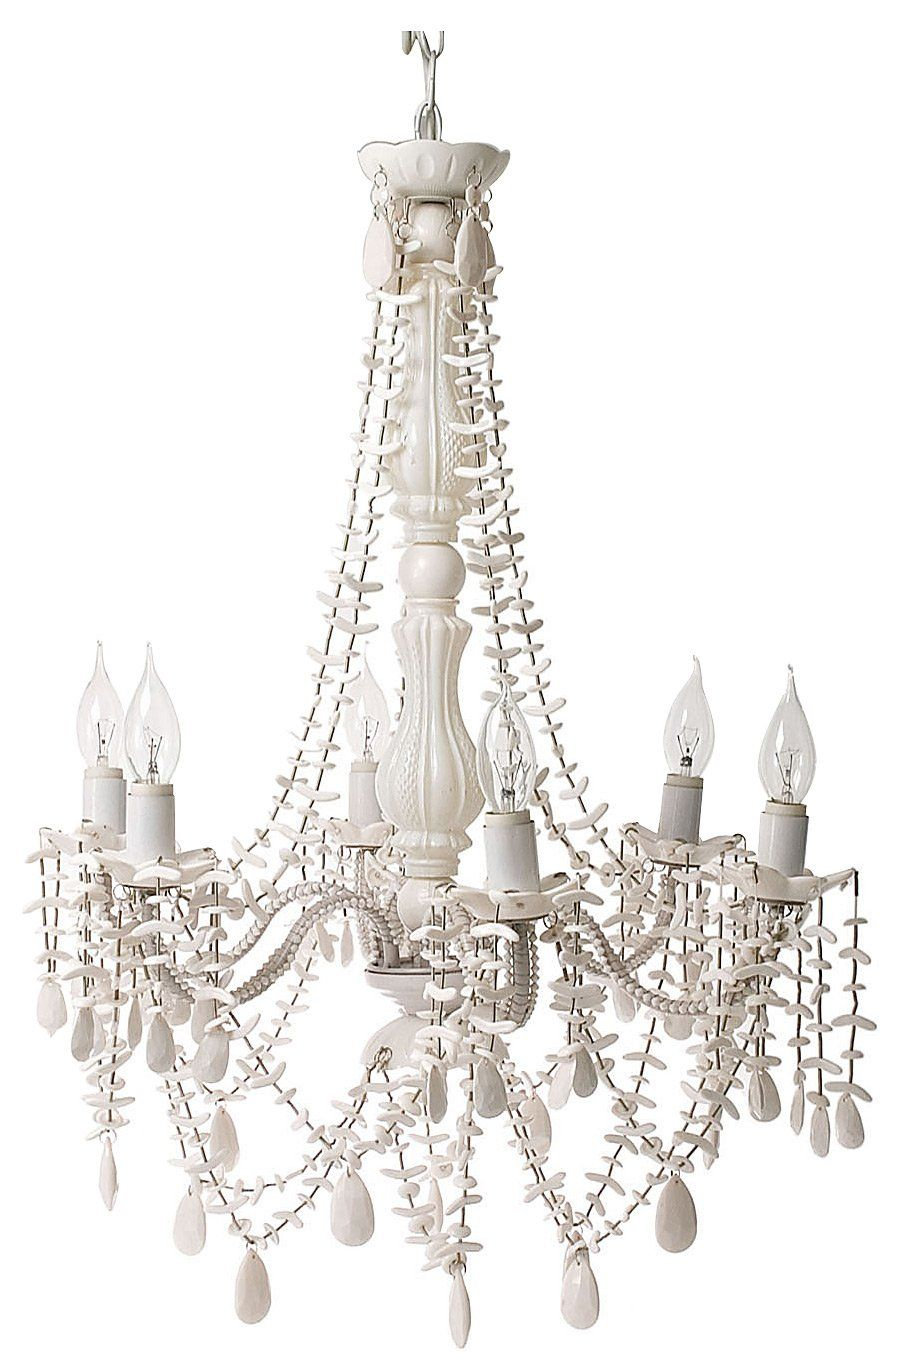 Silly lamp chandelier gypsy white shells 6 arms large free silly lamp chandelier gypsy white shells 6 arms large free shipping wow talk about lighting the way such a cute chandelier for any kids room aloadofball Choice Image